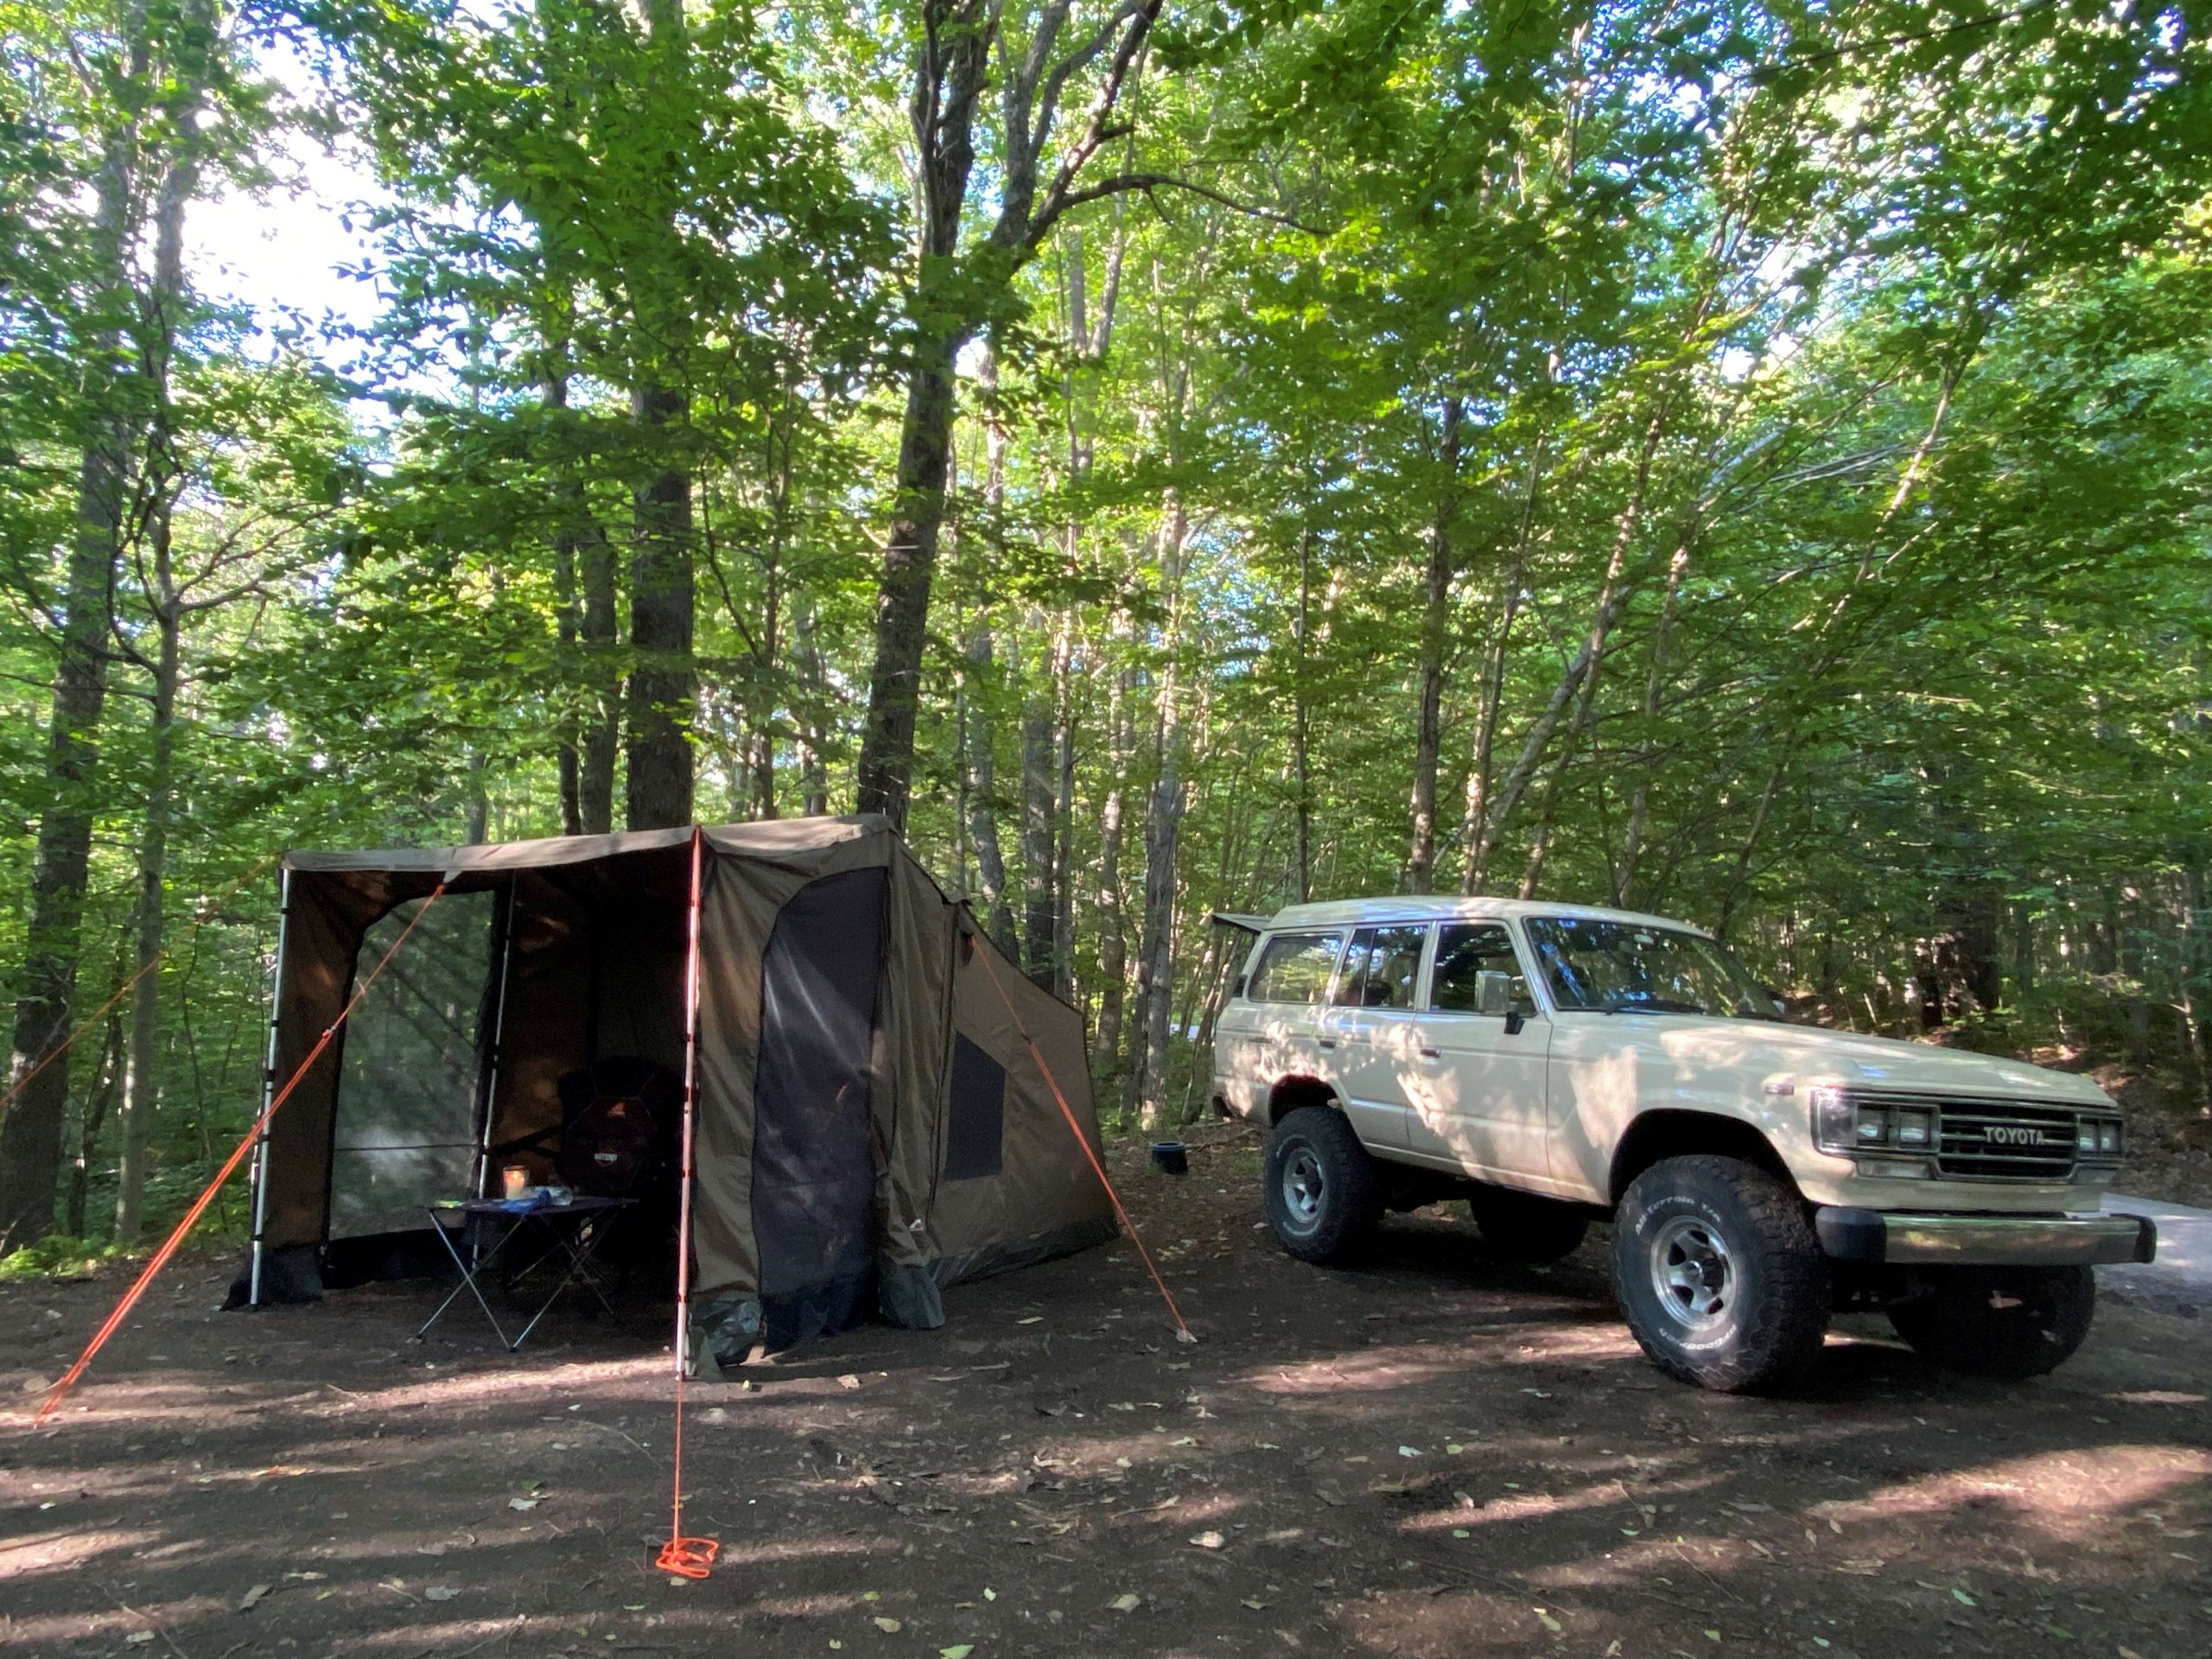 Oz Tent 30-Second Ground Tent - Fast Deployment For Ground Tent